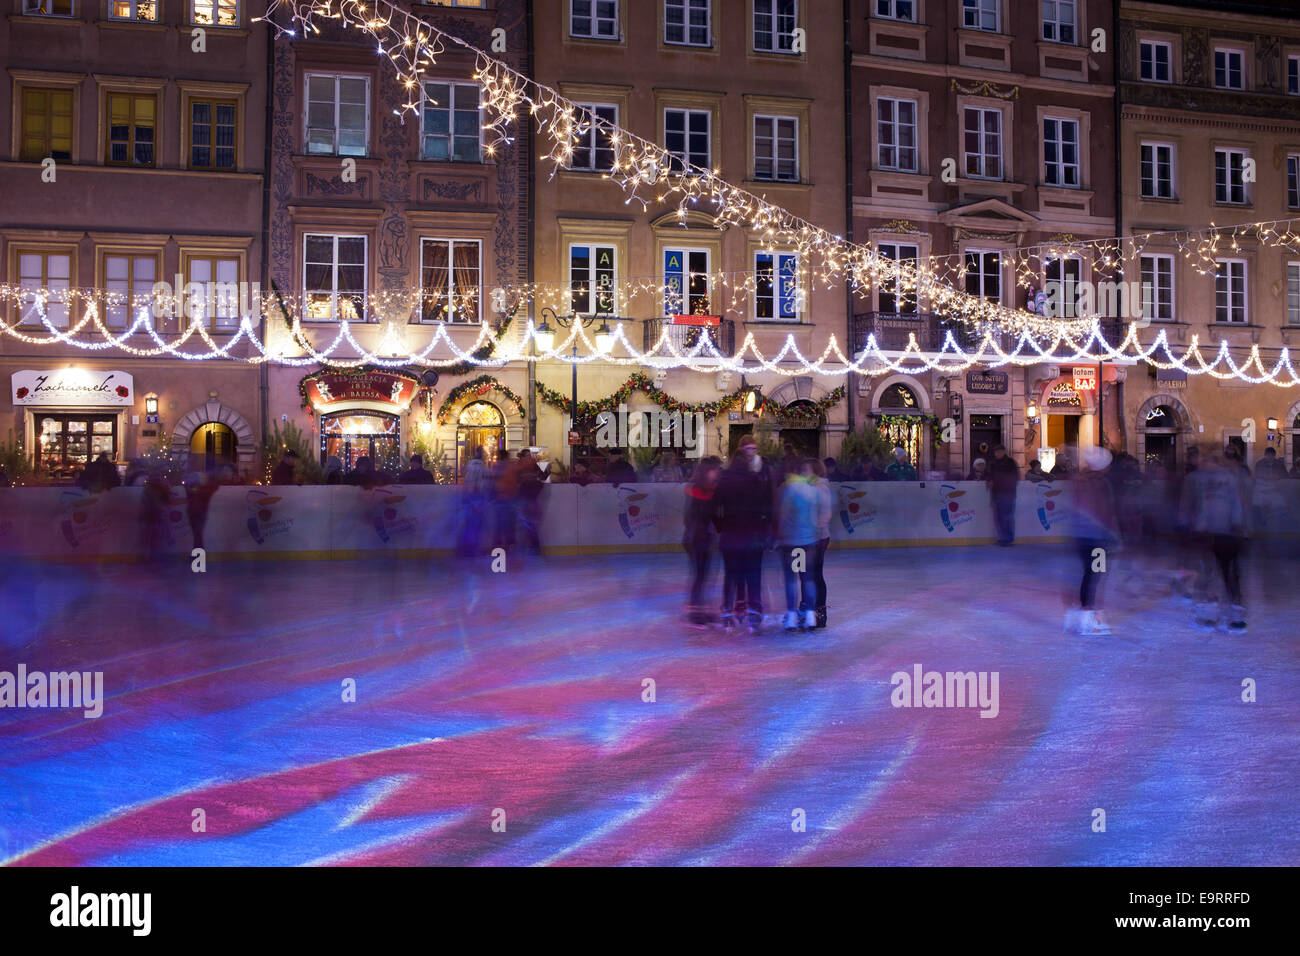 Ice rink during Christmas Time in the Old Town Square of Warsaw, Poland. - Stock Image